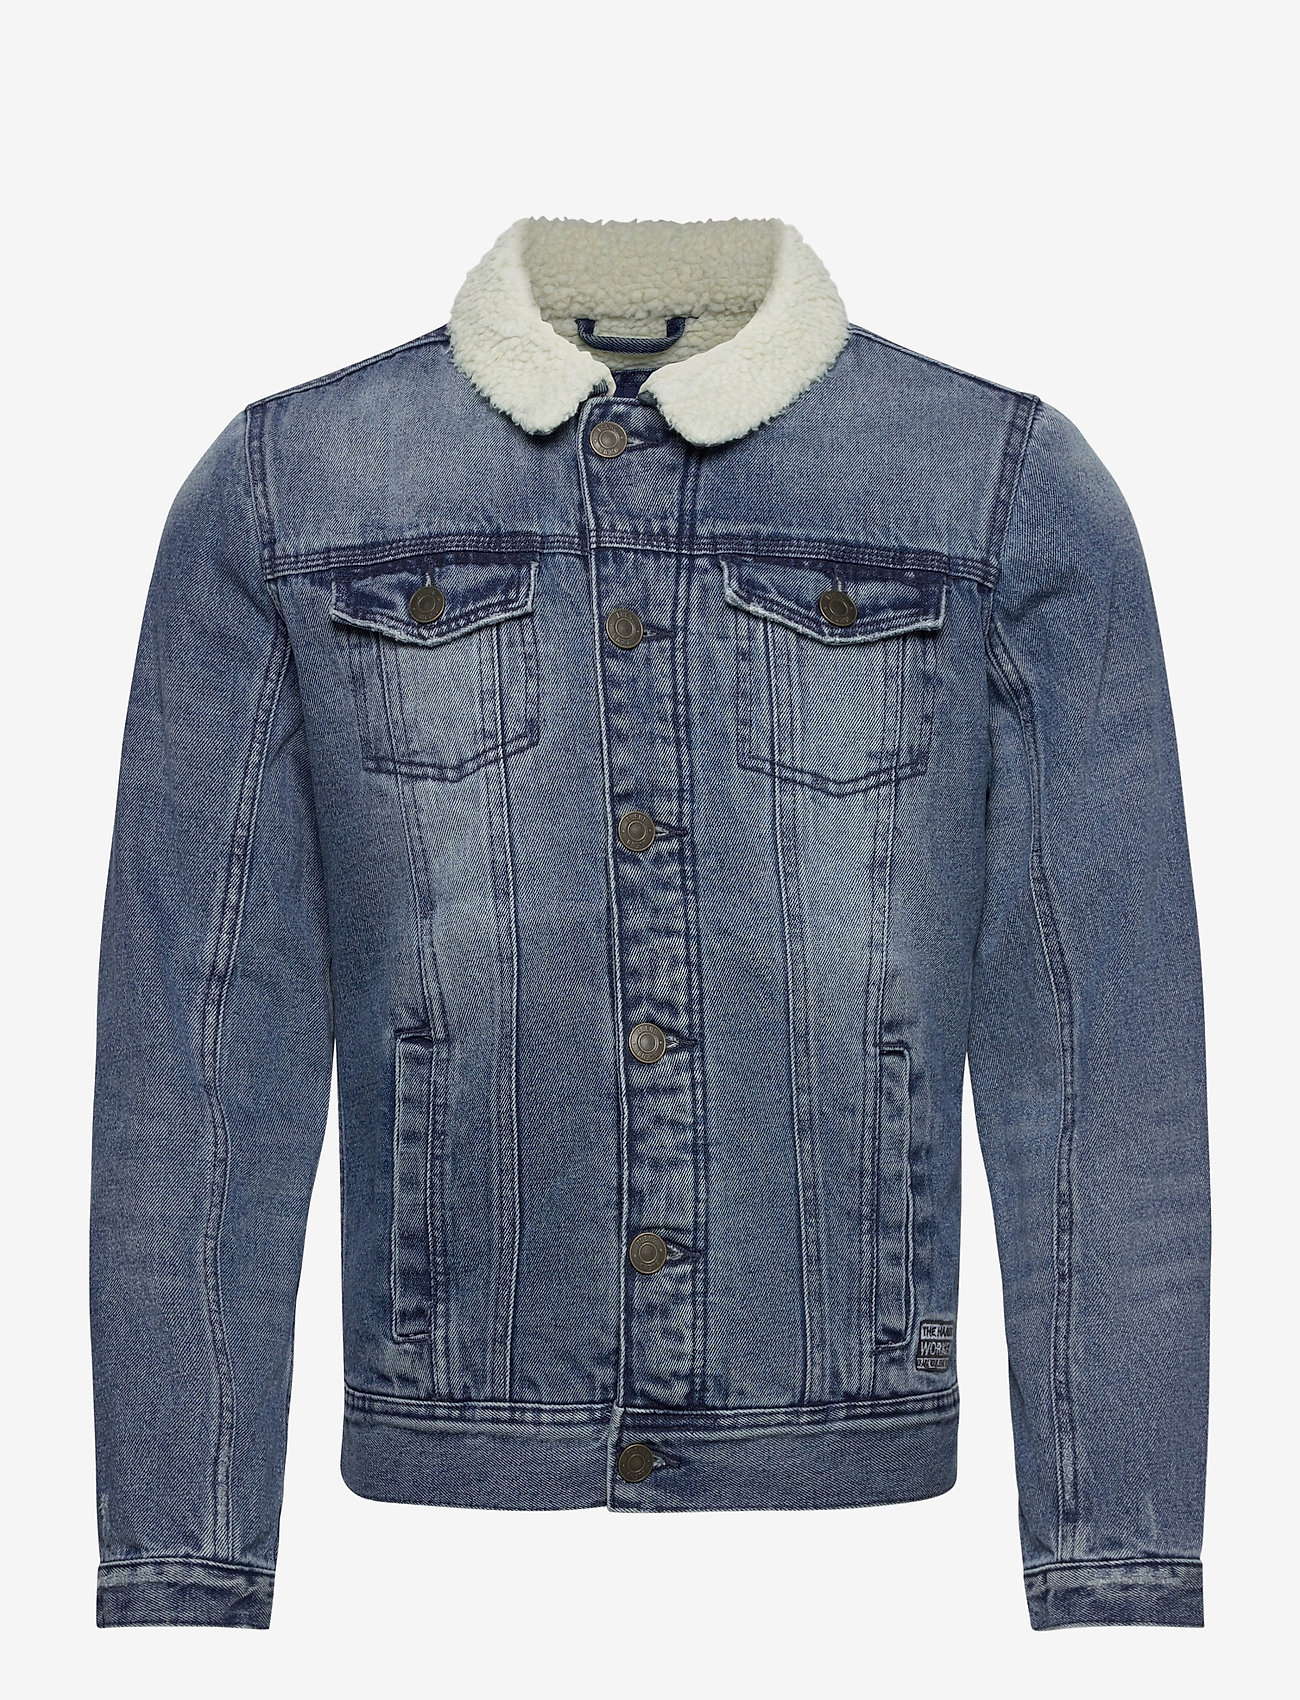 Blend - Outerwear - denim jackets - denim middle blue - 0